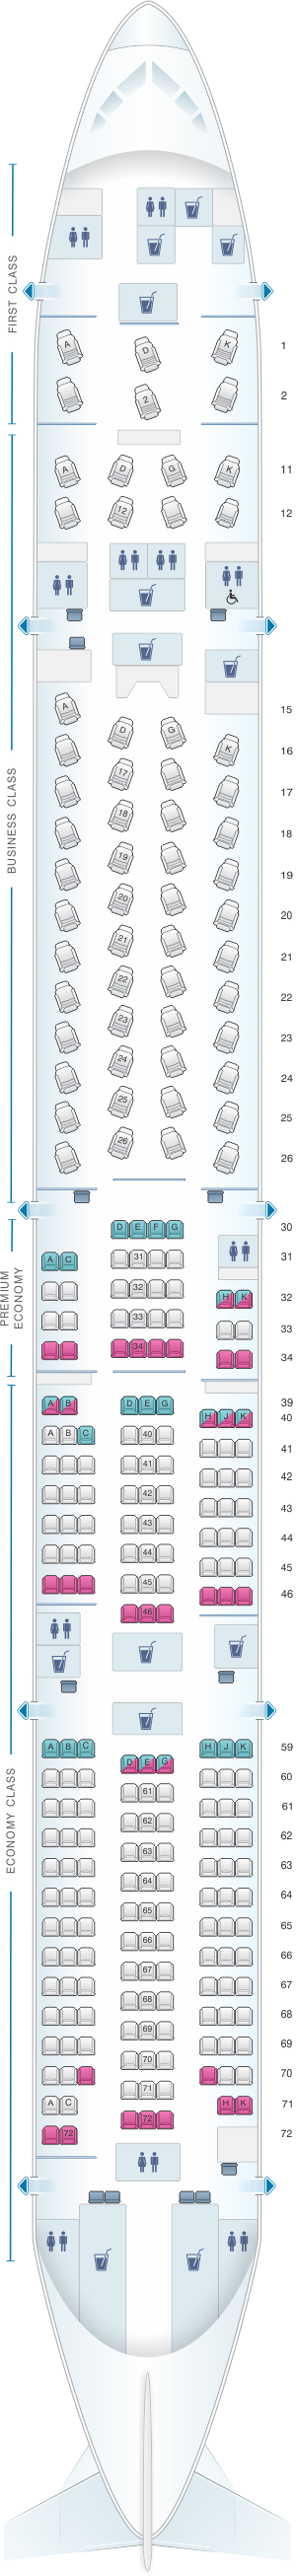 Seat map for Cathay Pacific Airways Boeing B777 300 (77H)